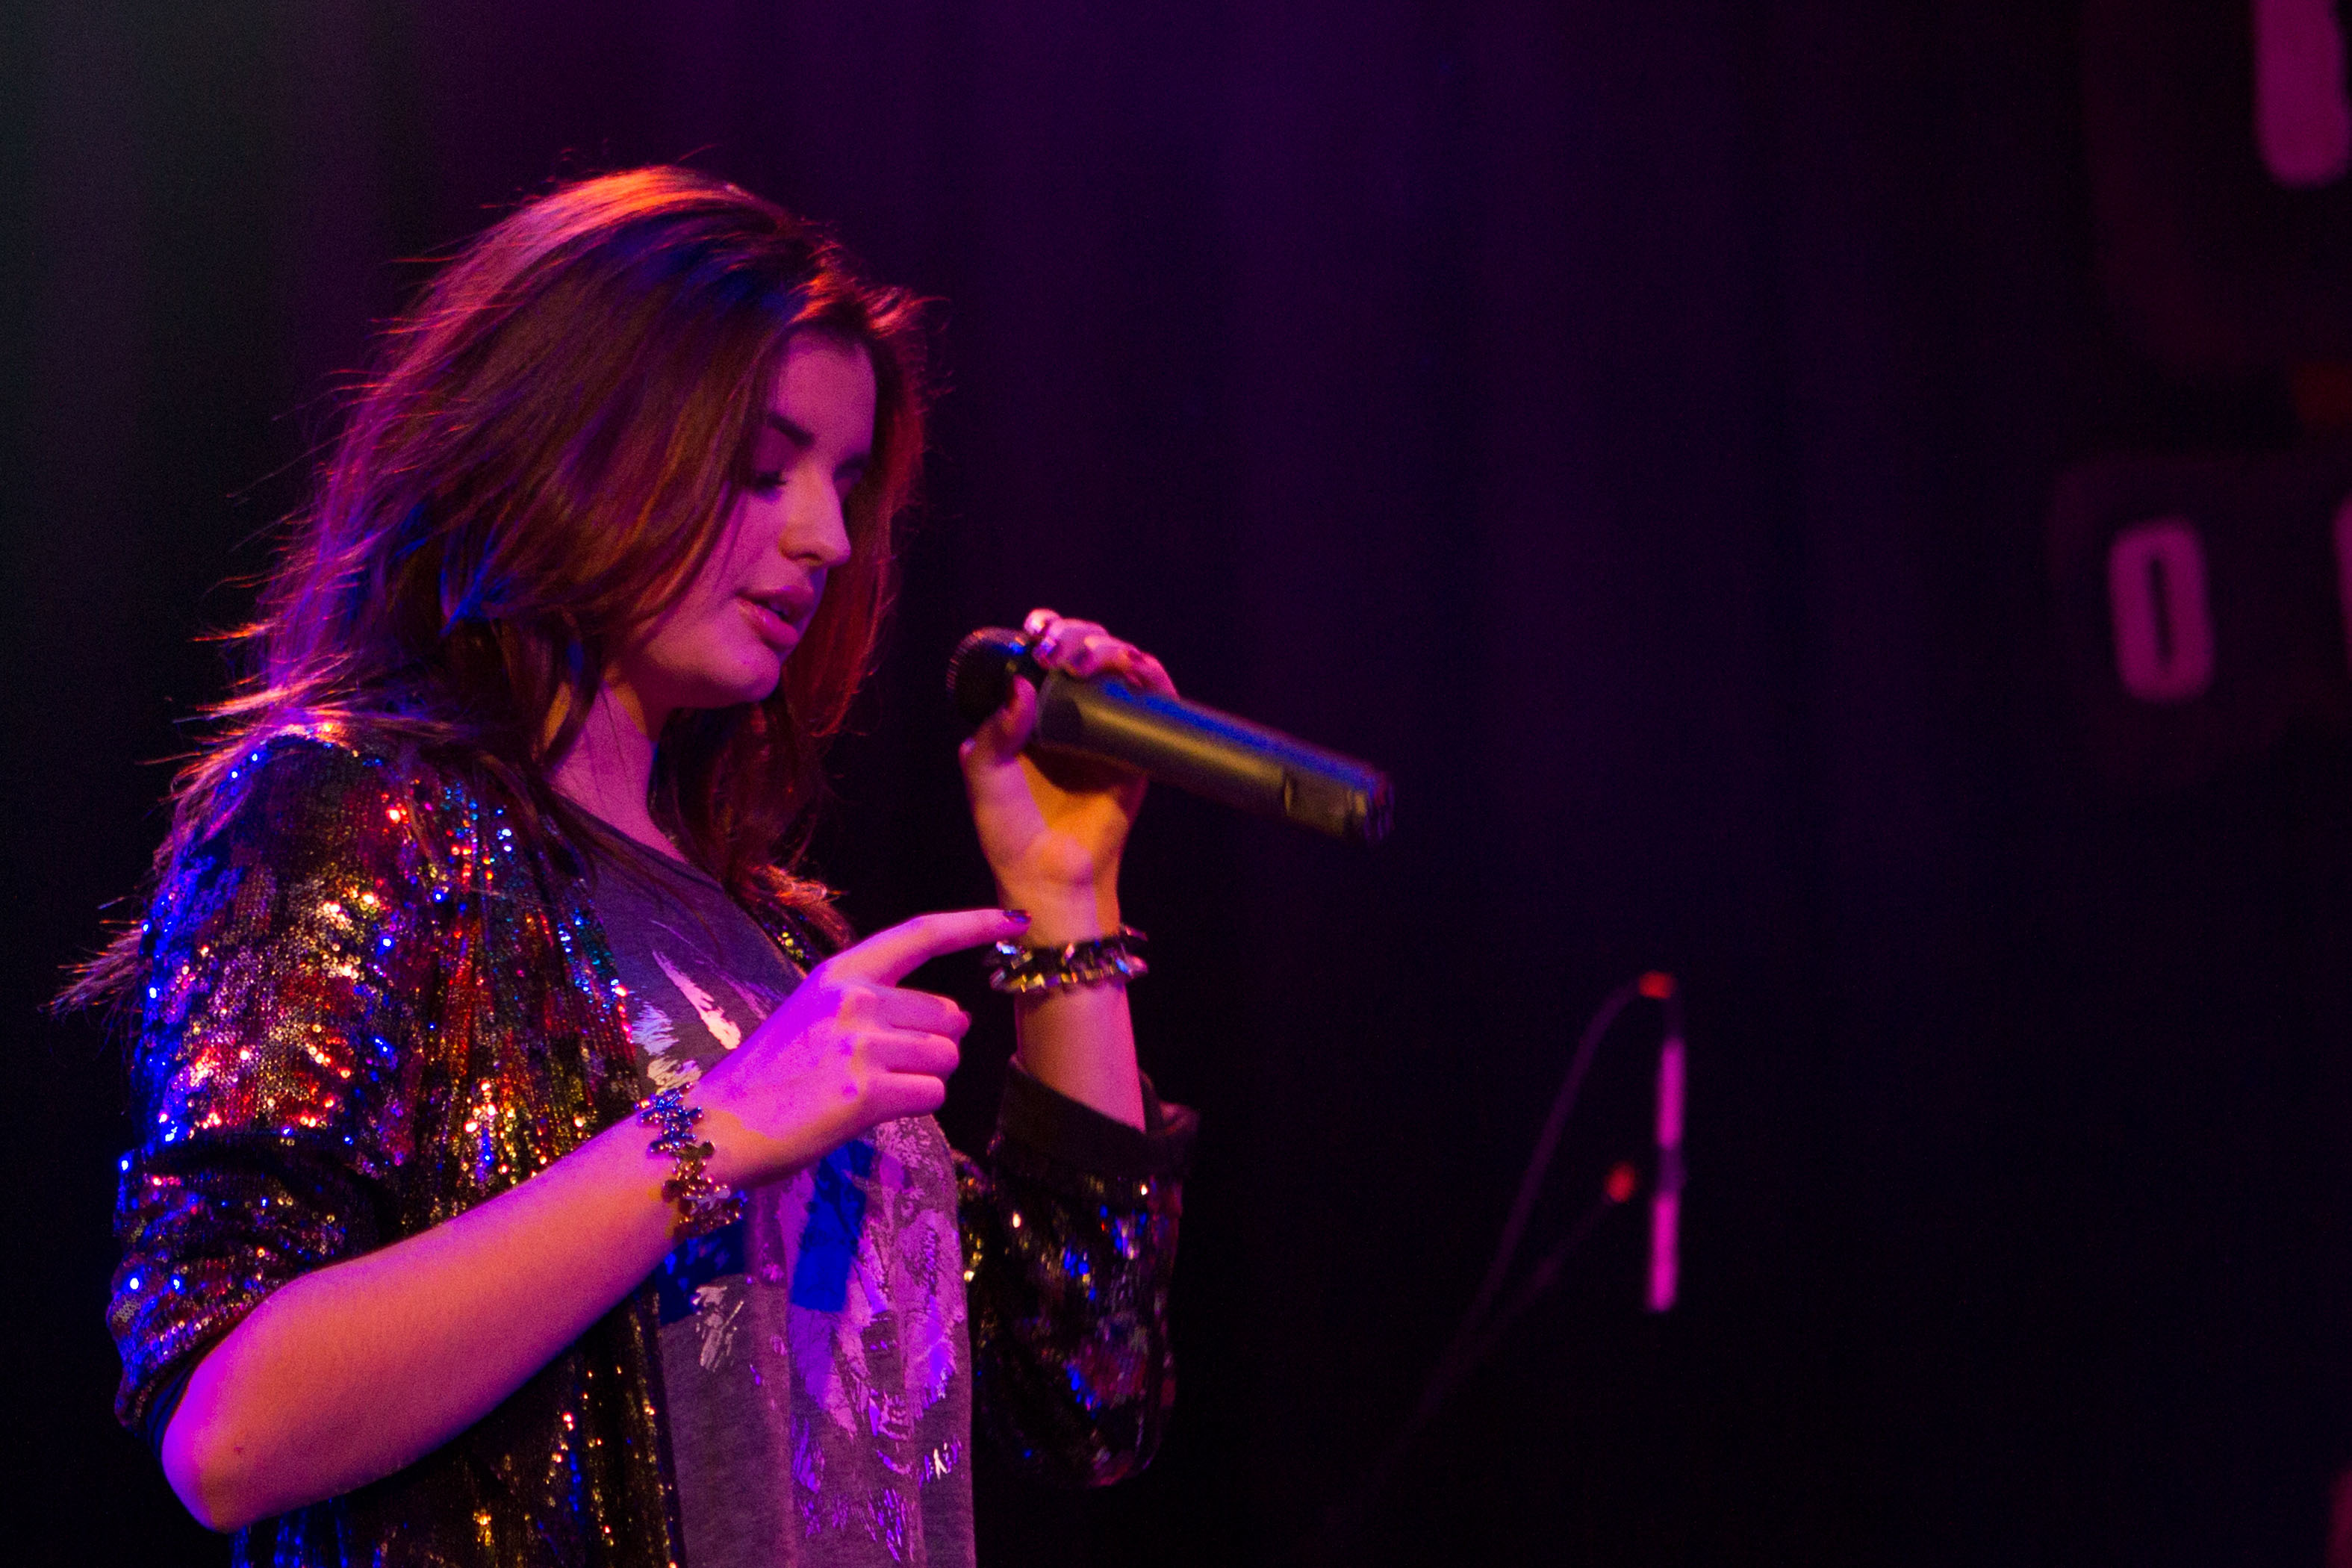 78334_Preppie_Rebecca_Black_performing_at_The_House_Of_Blues_in_Anaheim_16_122_60lo.JPG